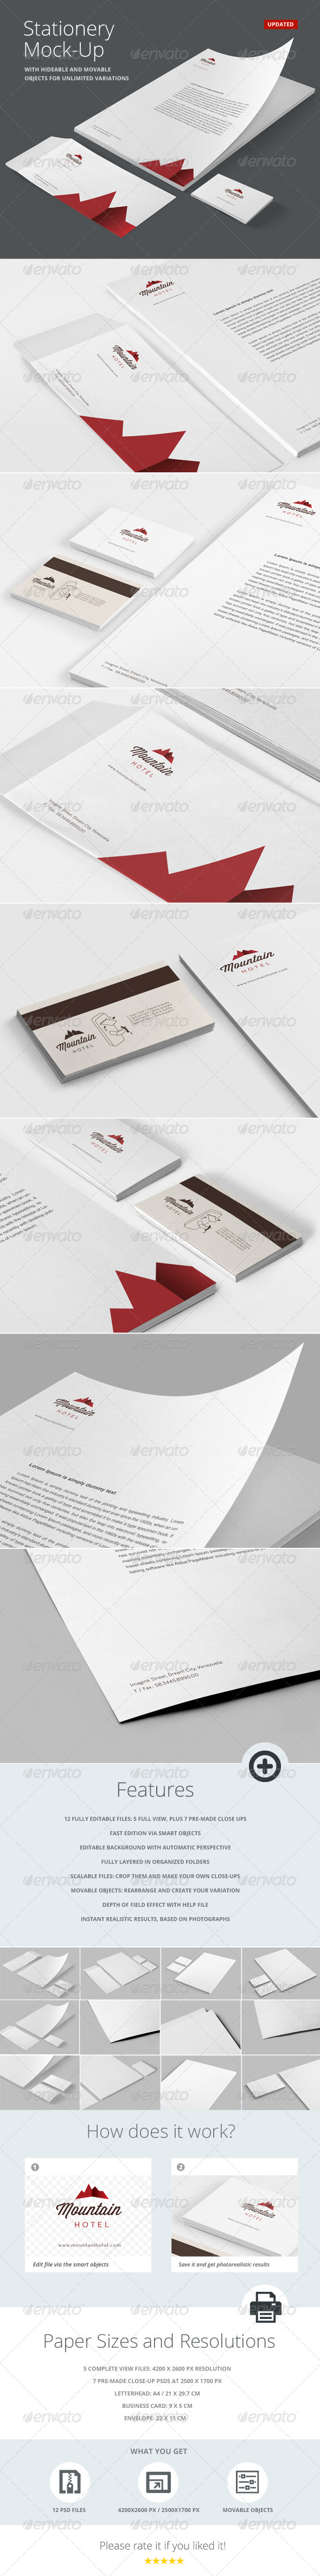 Stationery | Branding Mock-Up - Stationery Print